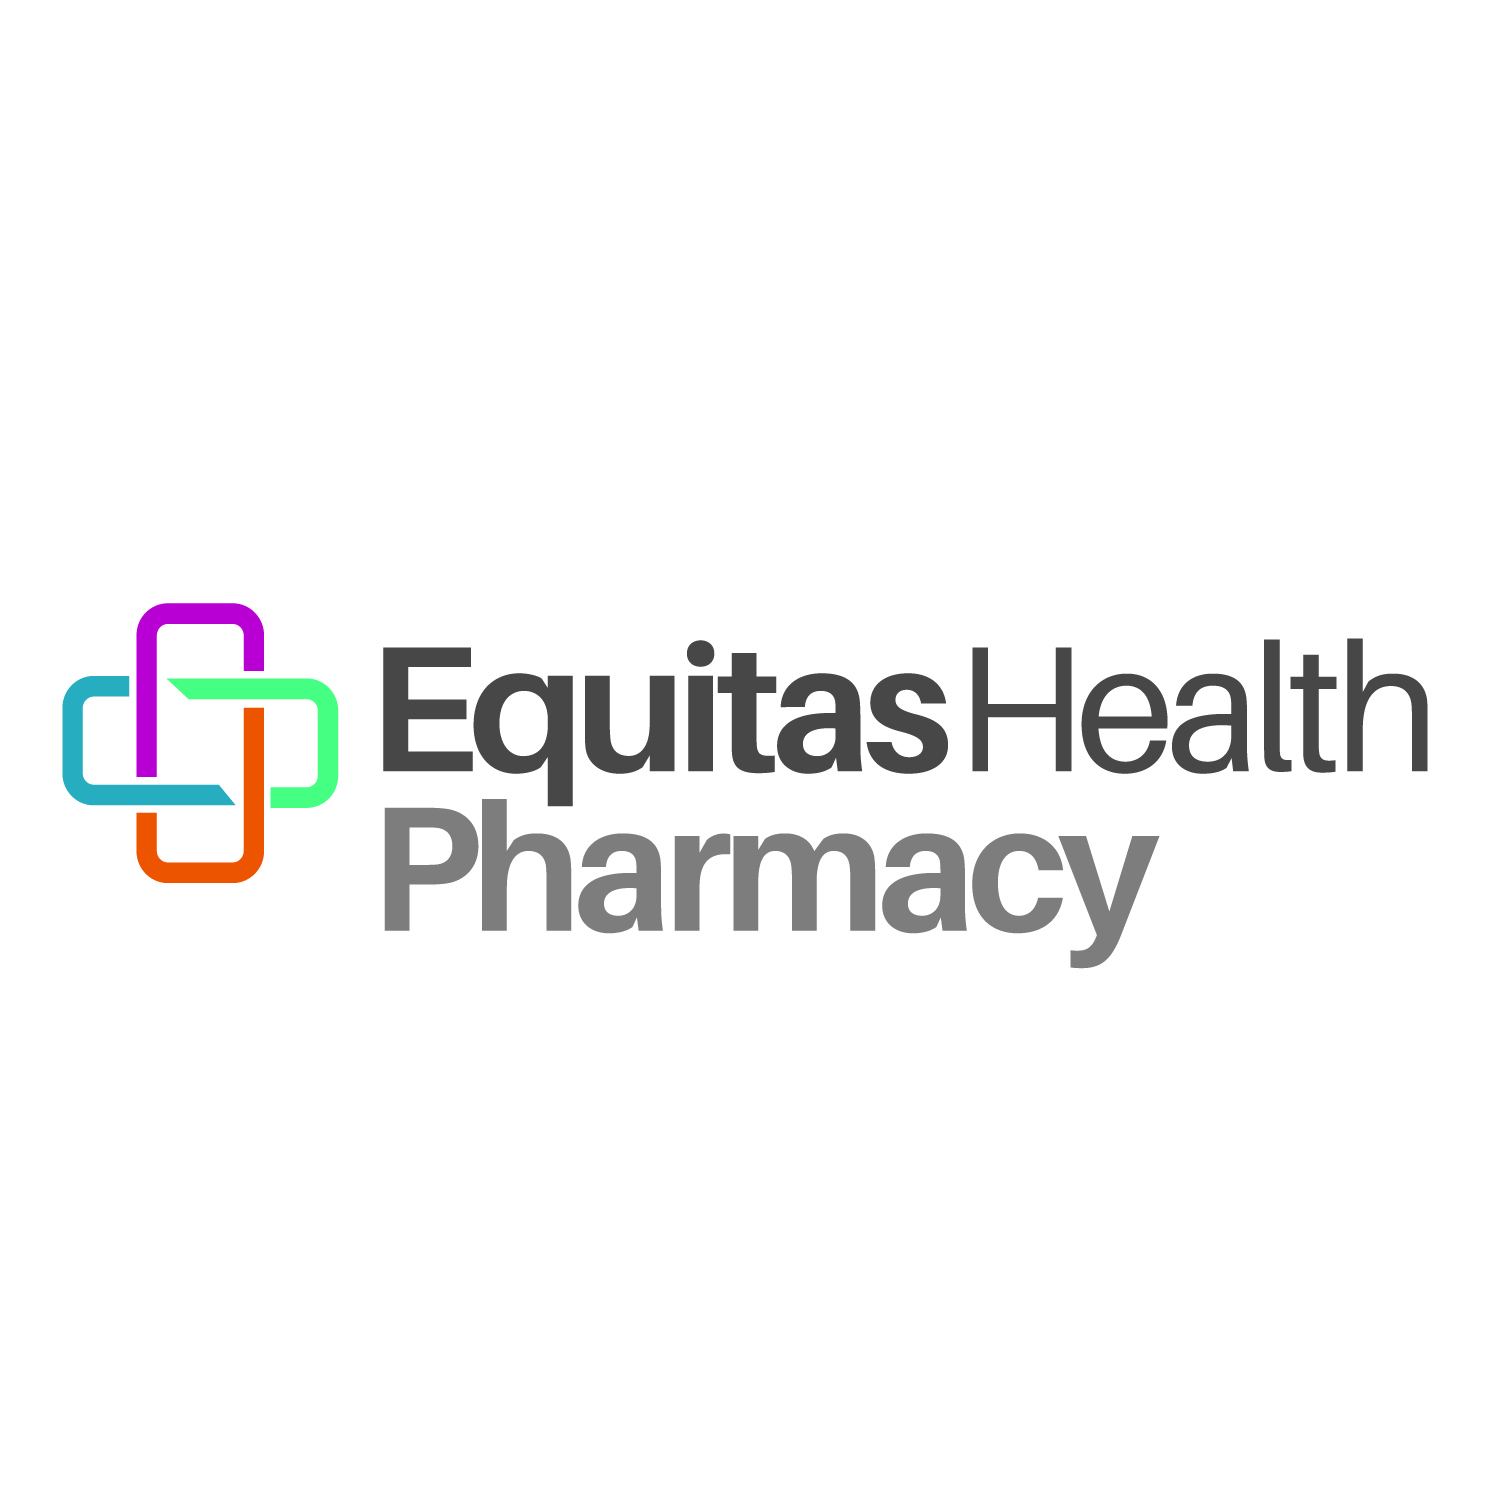 Equitas Health Pharmacy's Logo